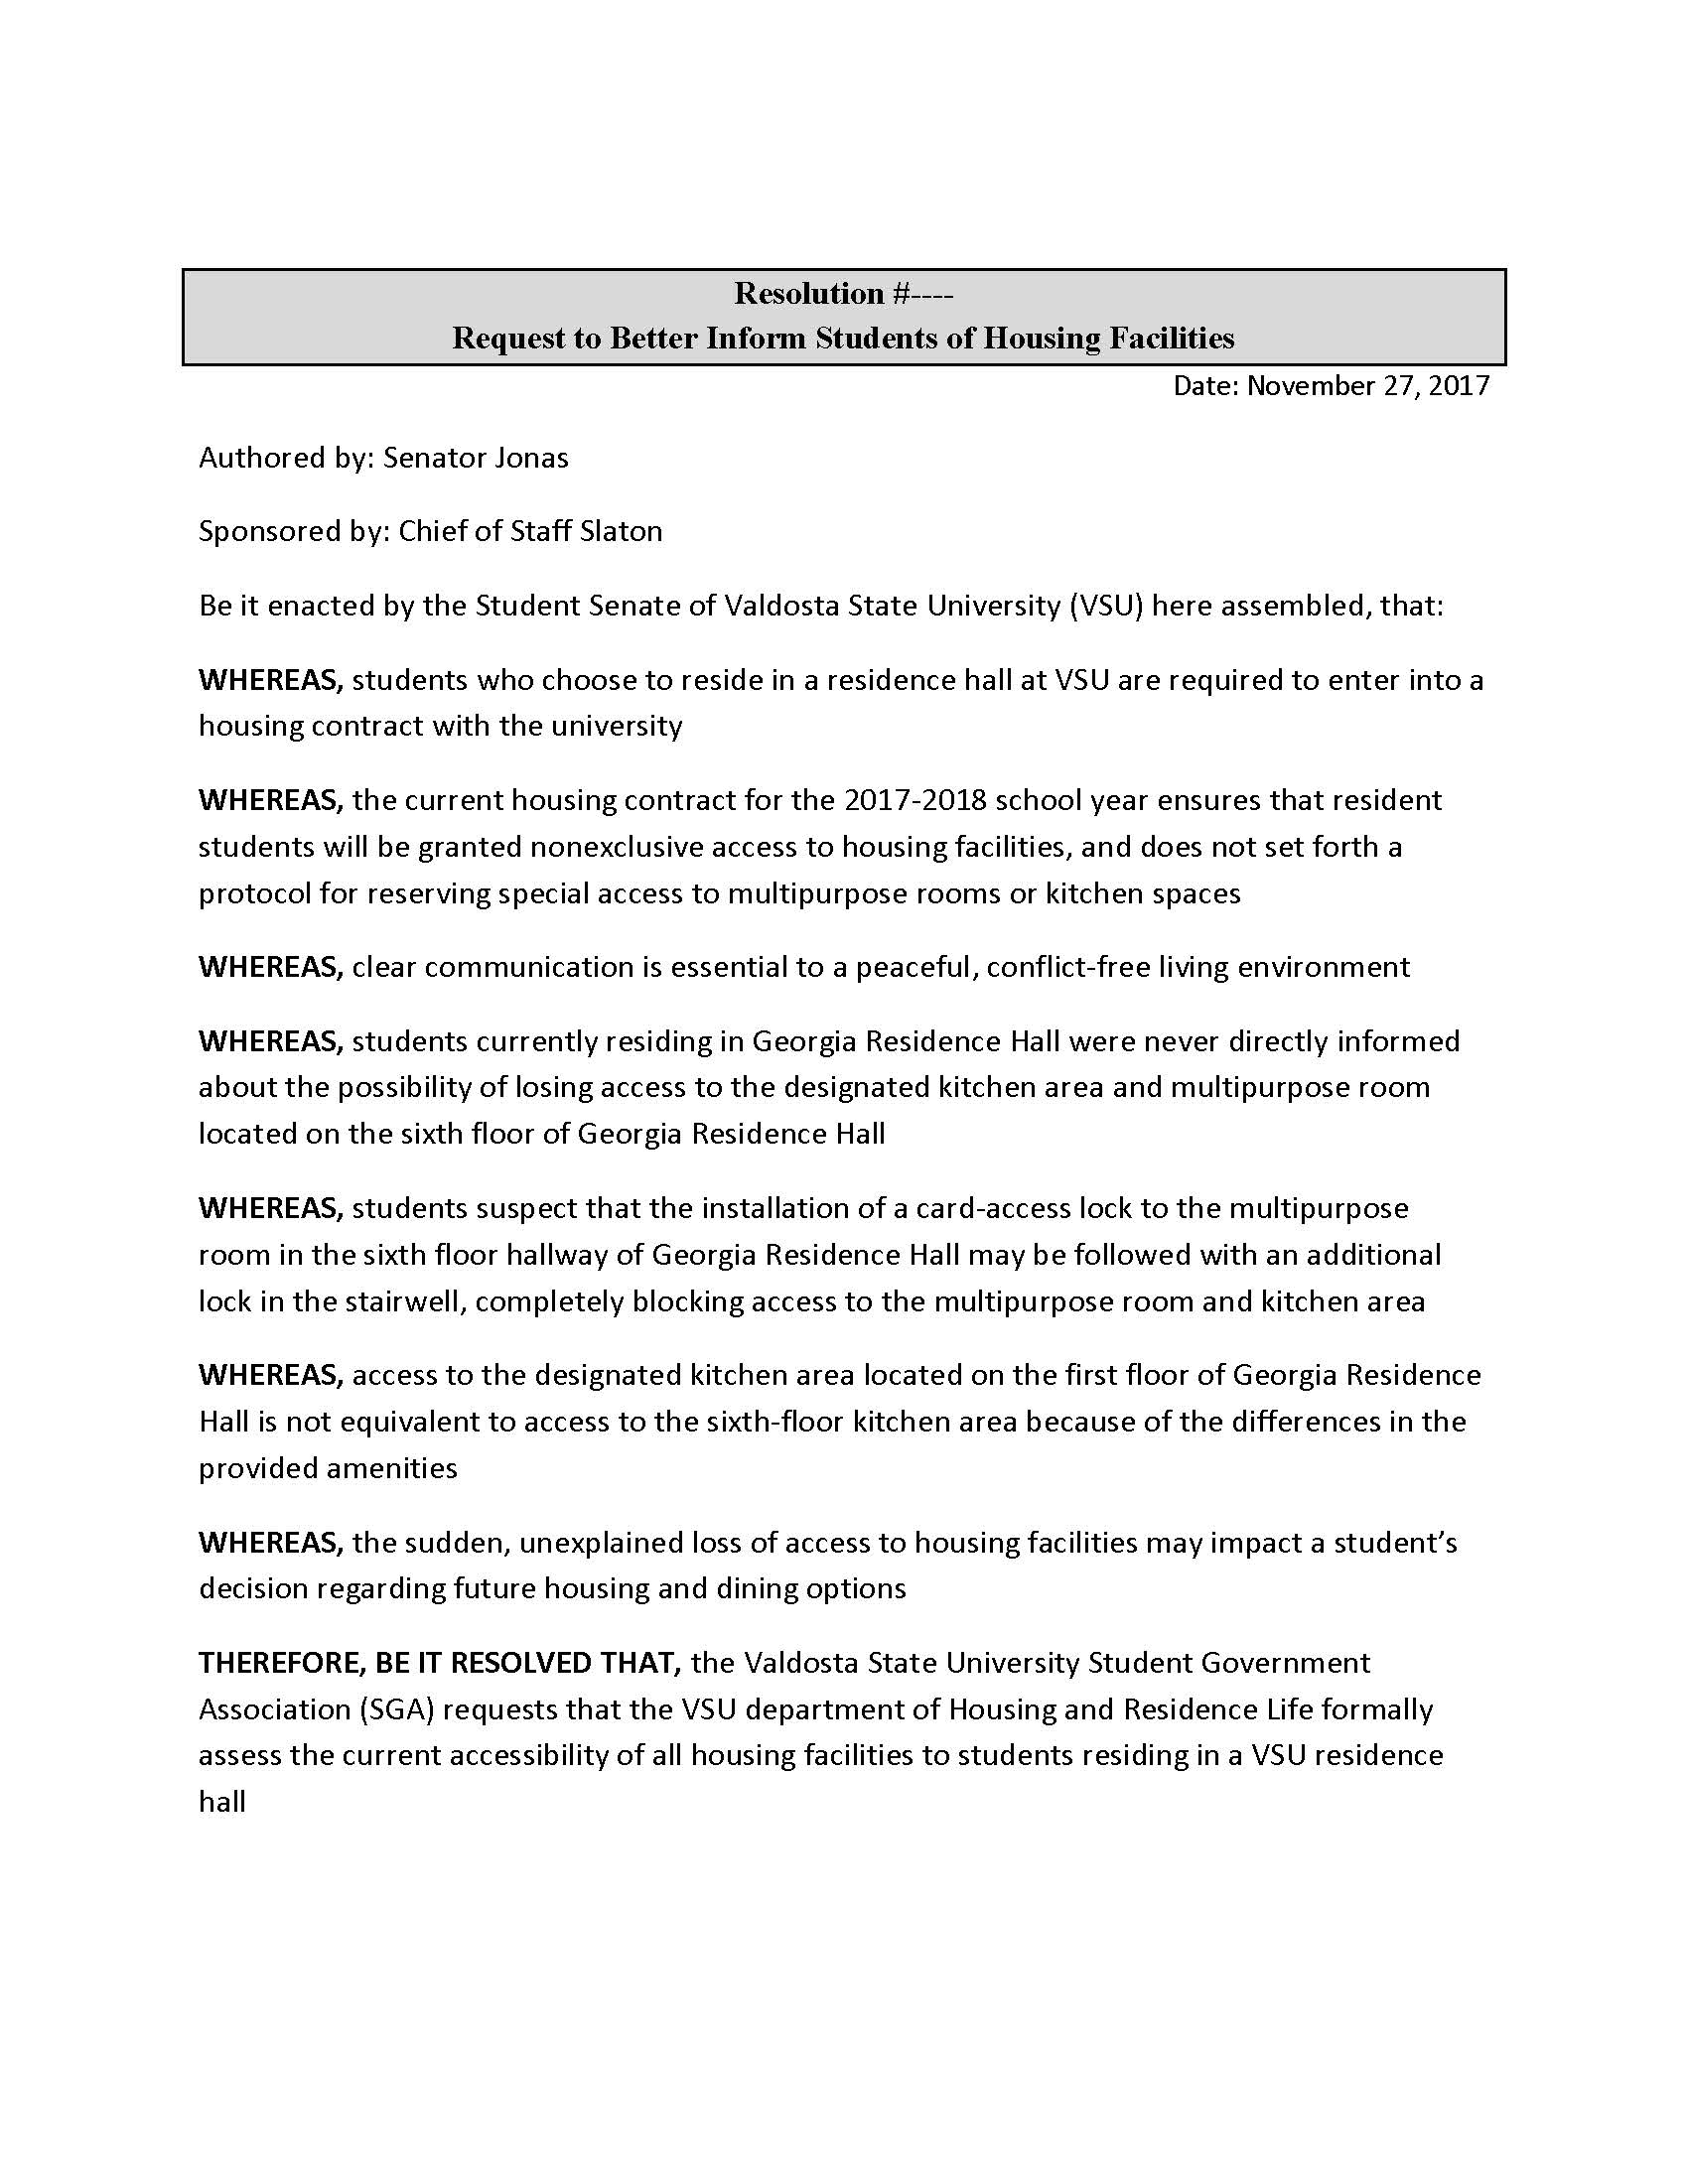 Housing resolution_Page_1